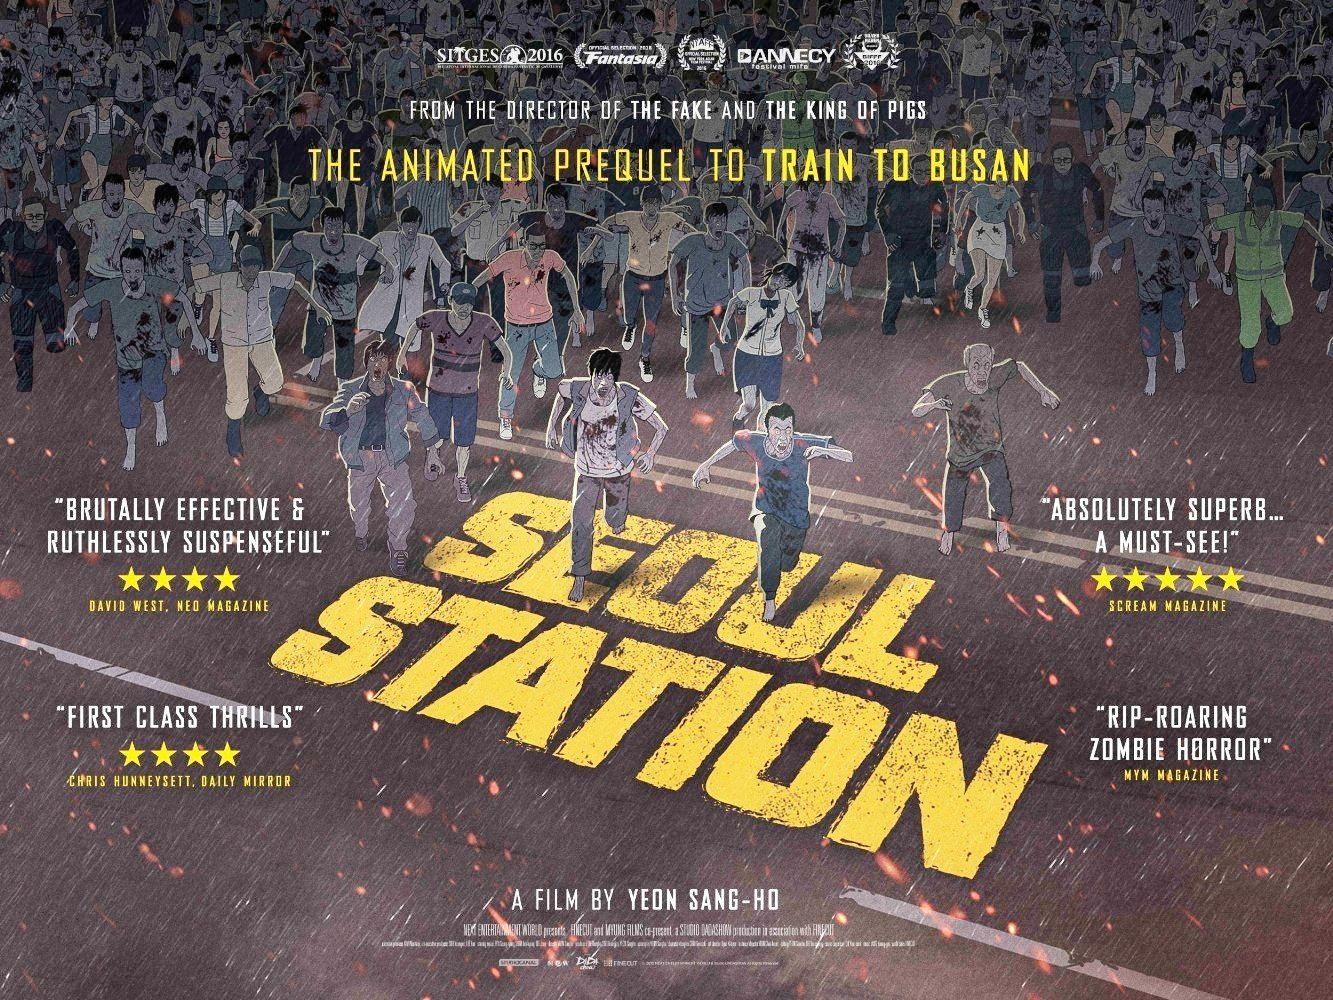 Don't forget! We're screening Yeon Sang-ho's animated horror Seoul Station, the prequel to Train To Busan, at 11.15pm. https://t.co/uI9n7m04WR